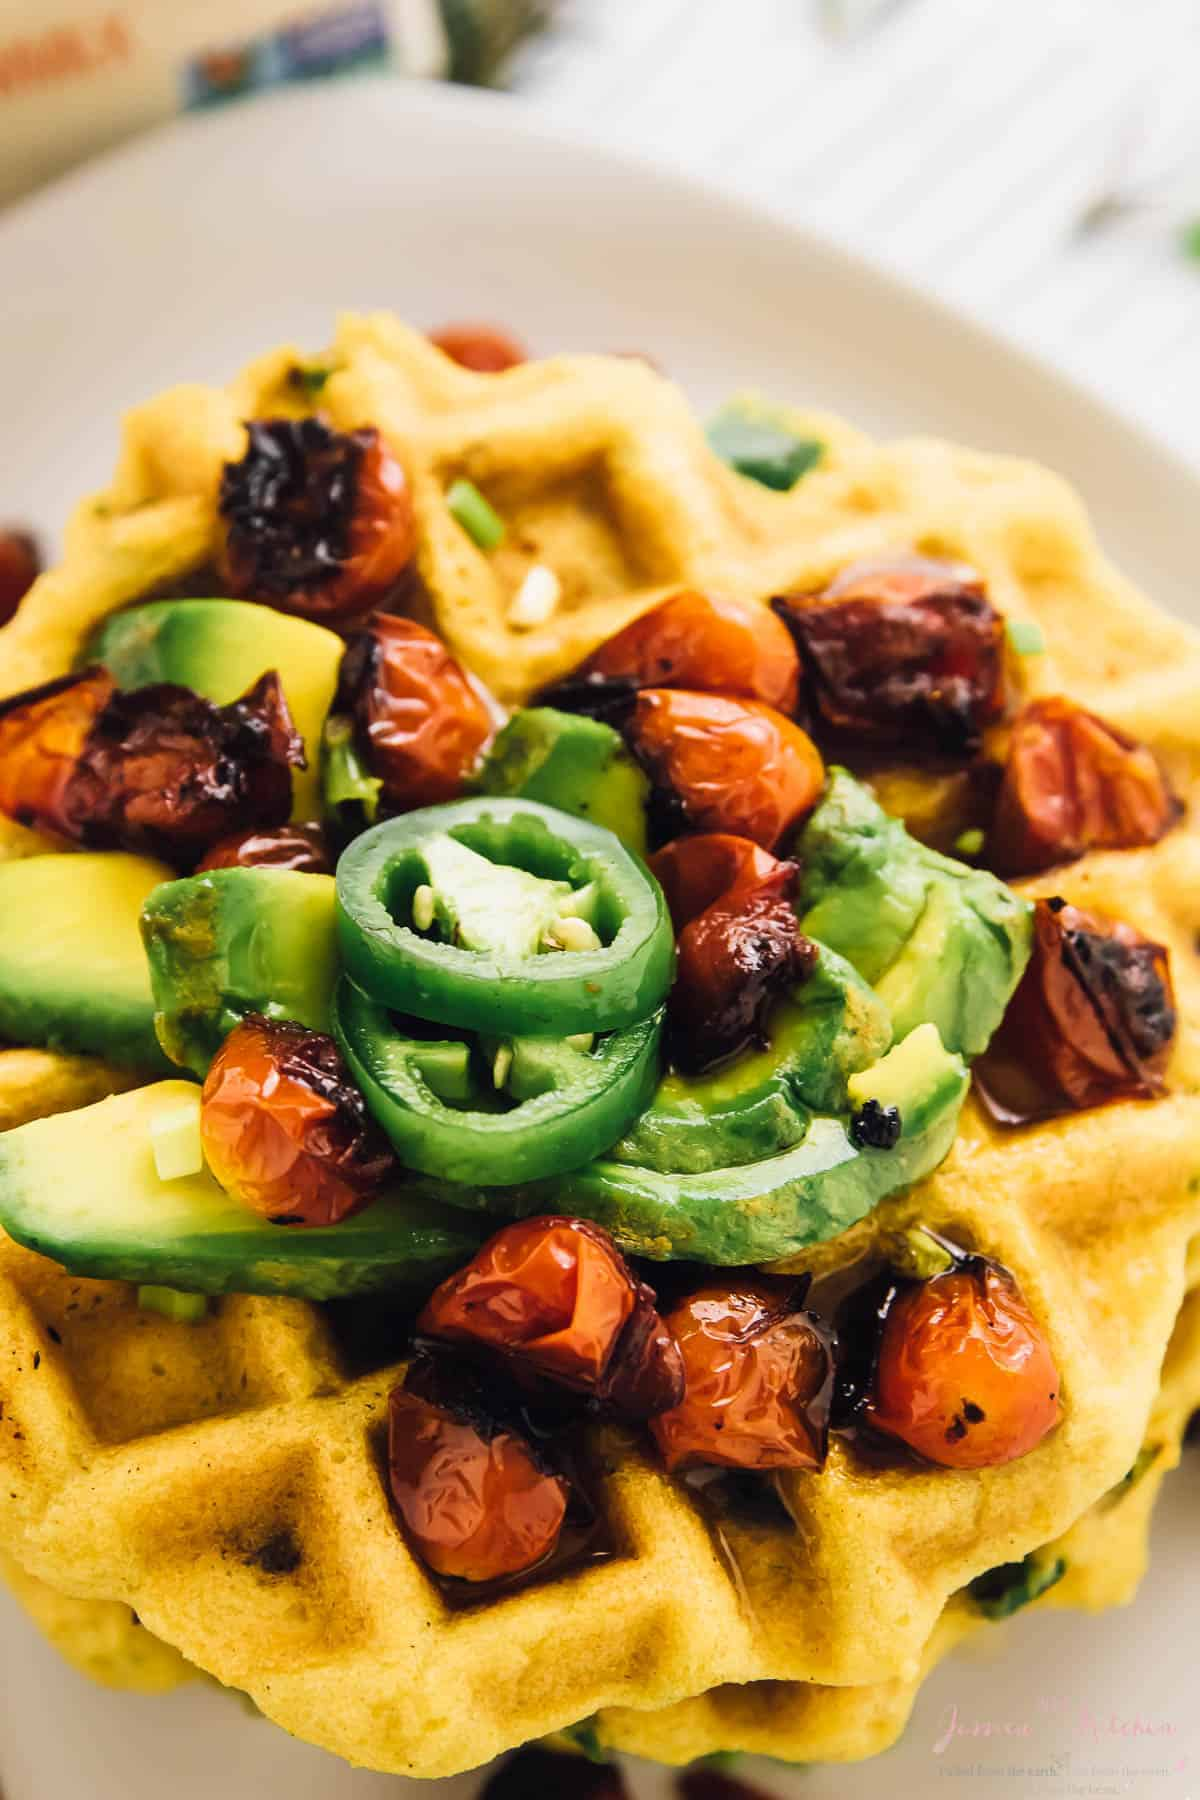 These Jalapeño Cornbread Waffles are the ultimate savoury waffles! They're made with roasted garlic, rosemary, and are perfect for brunch! via https://jessicainthekitchen.com